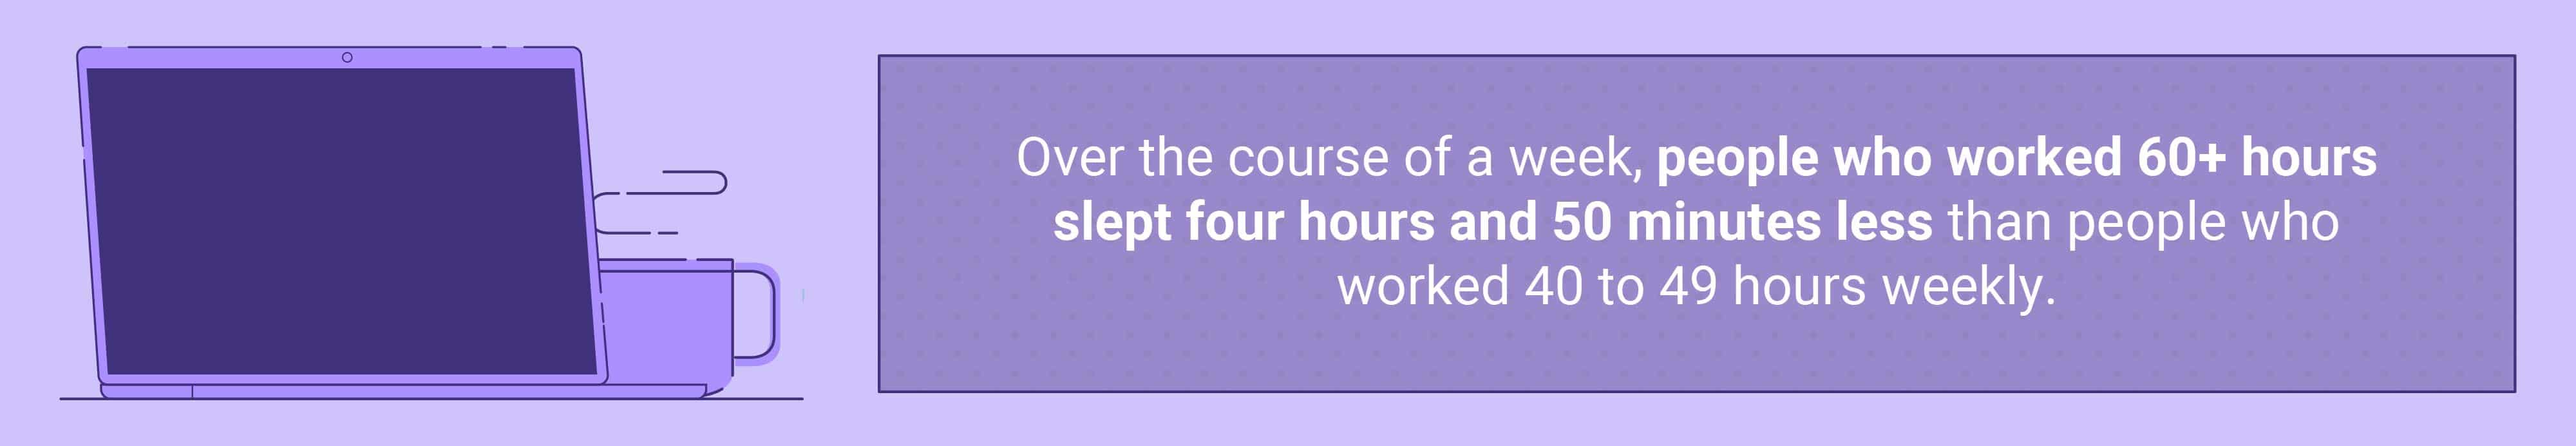 Overworked-and-Under-Rested